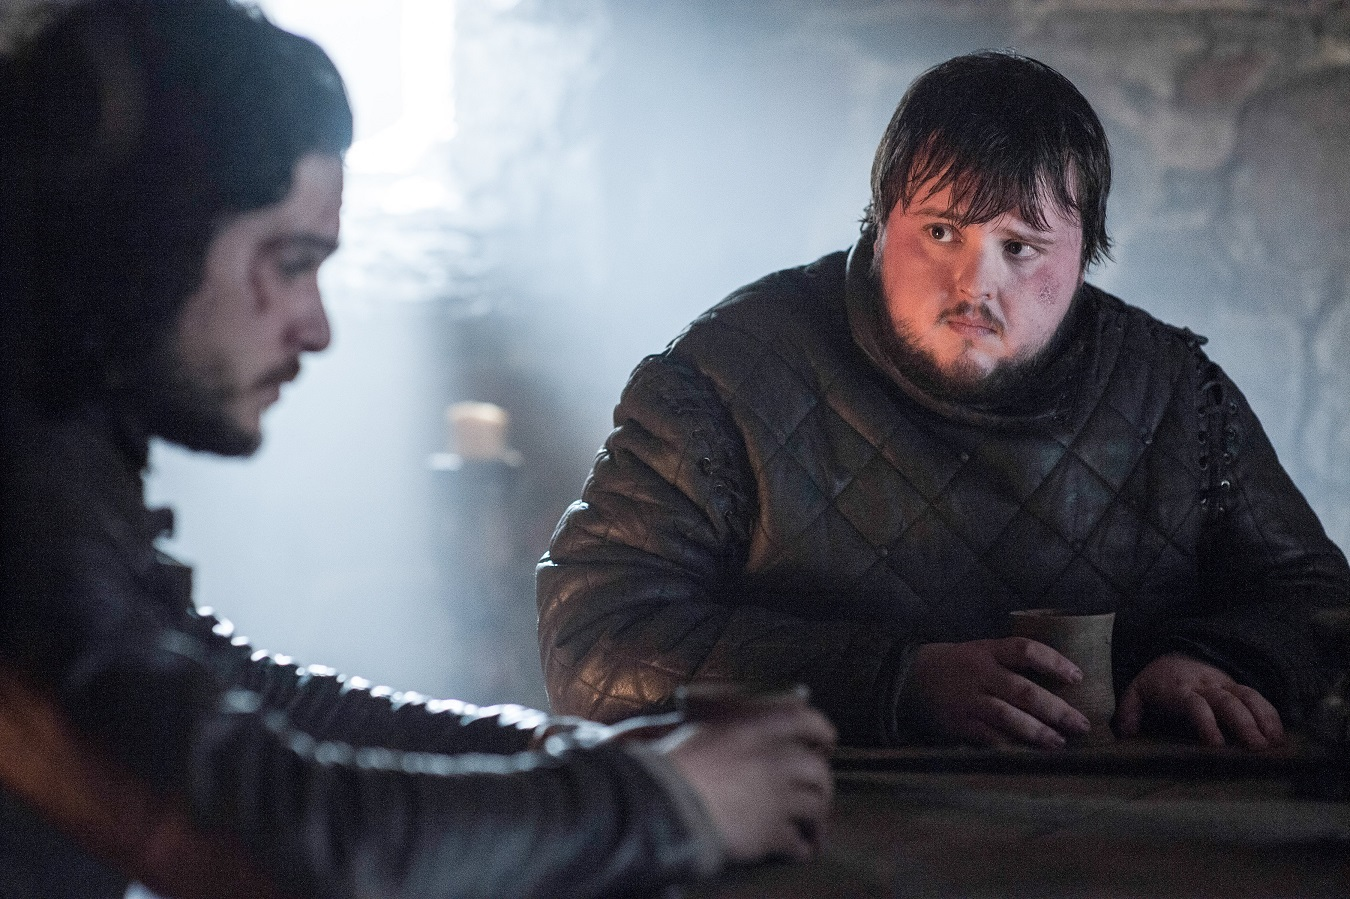 Jon Snow Samwell Tarly season 5